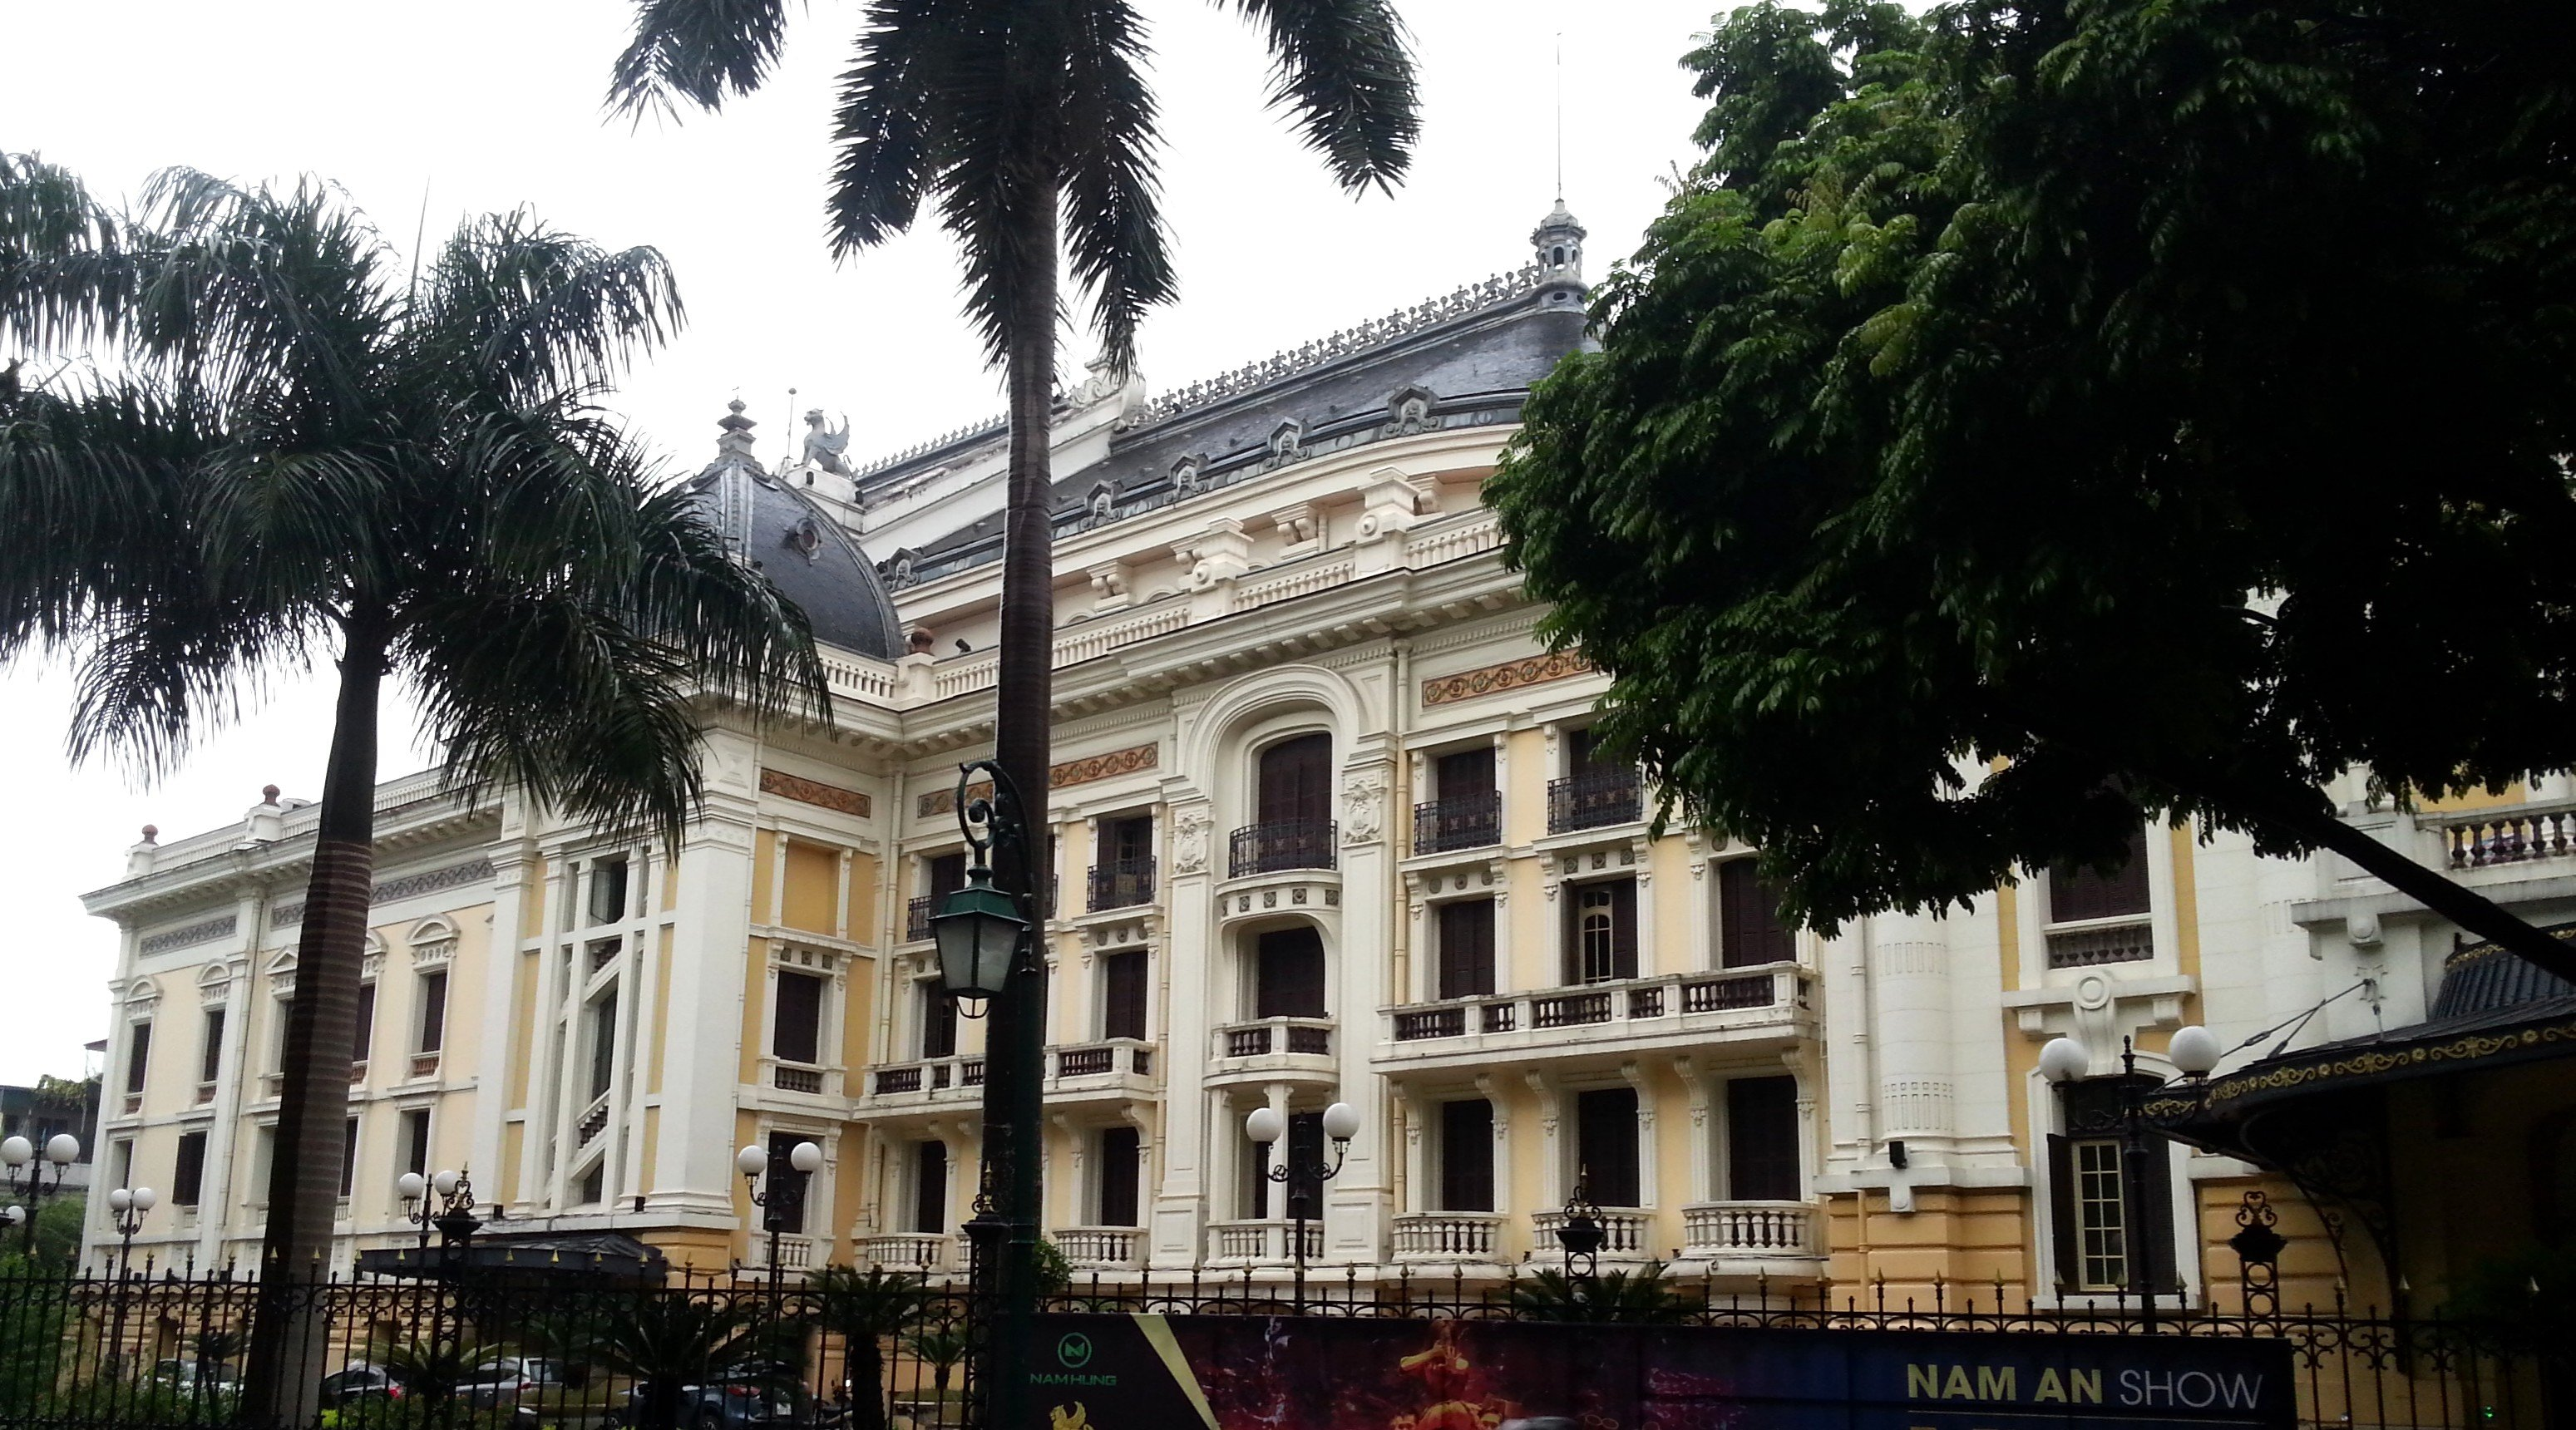 Side view of Hanoi Opera House